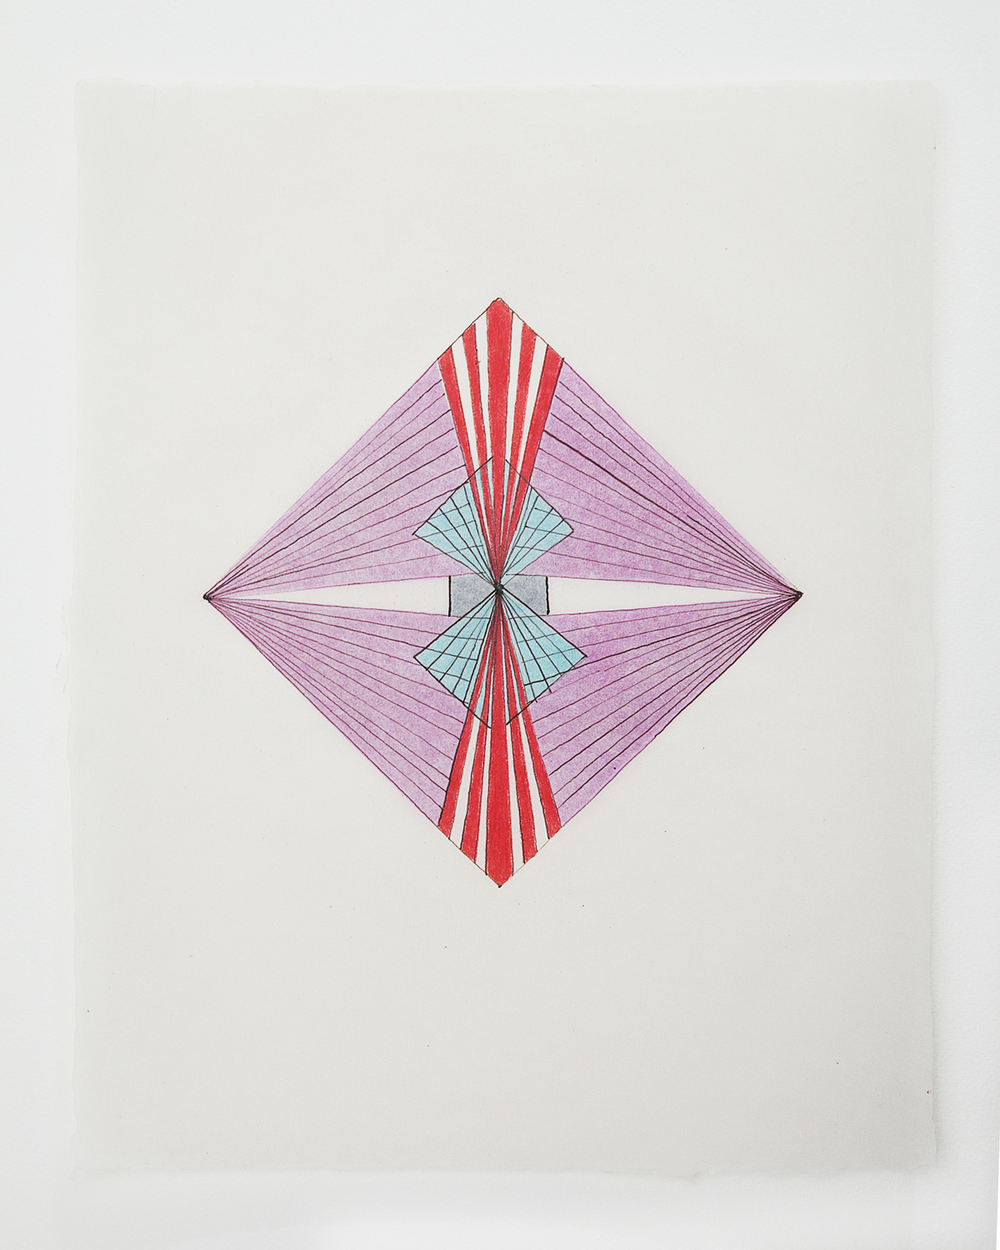 Tayo Heuser Small Geometric Drawings on abaca paper ink and colored pencil on abaca paper